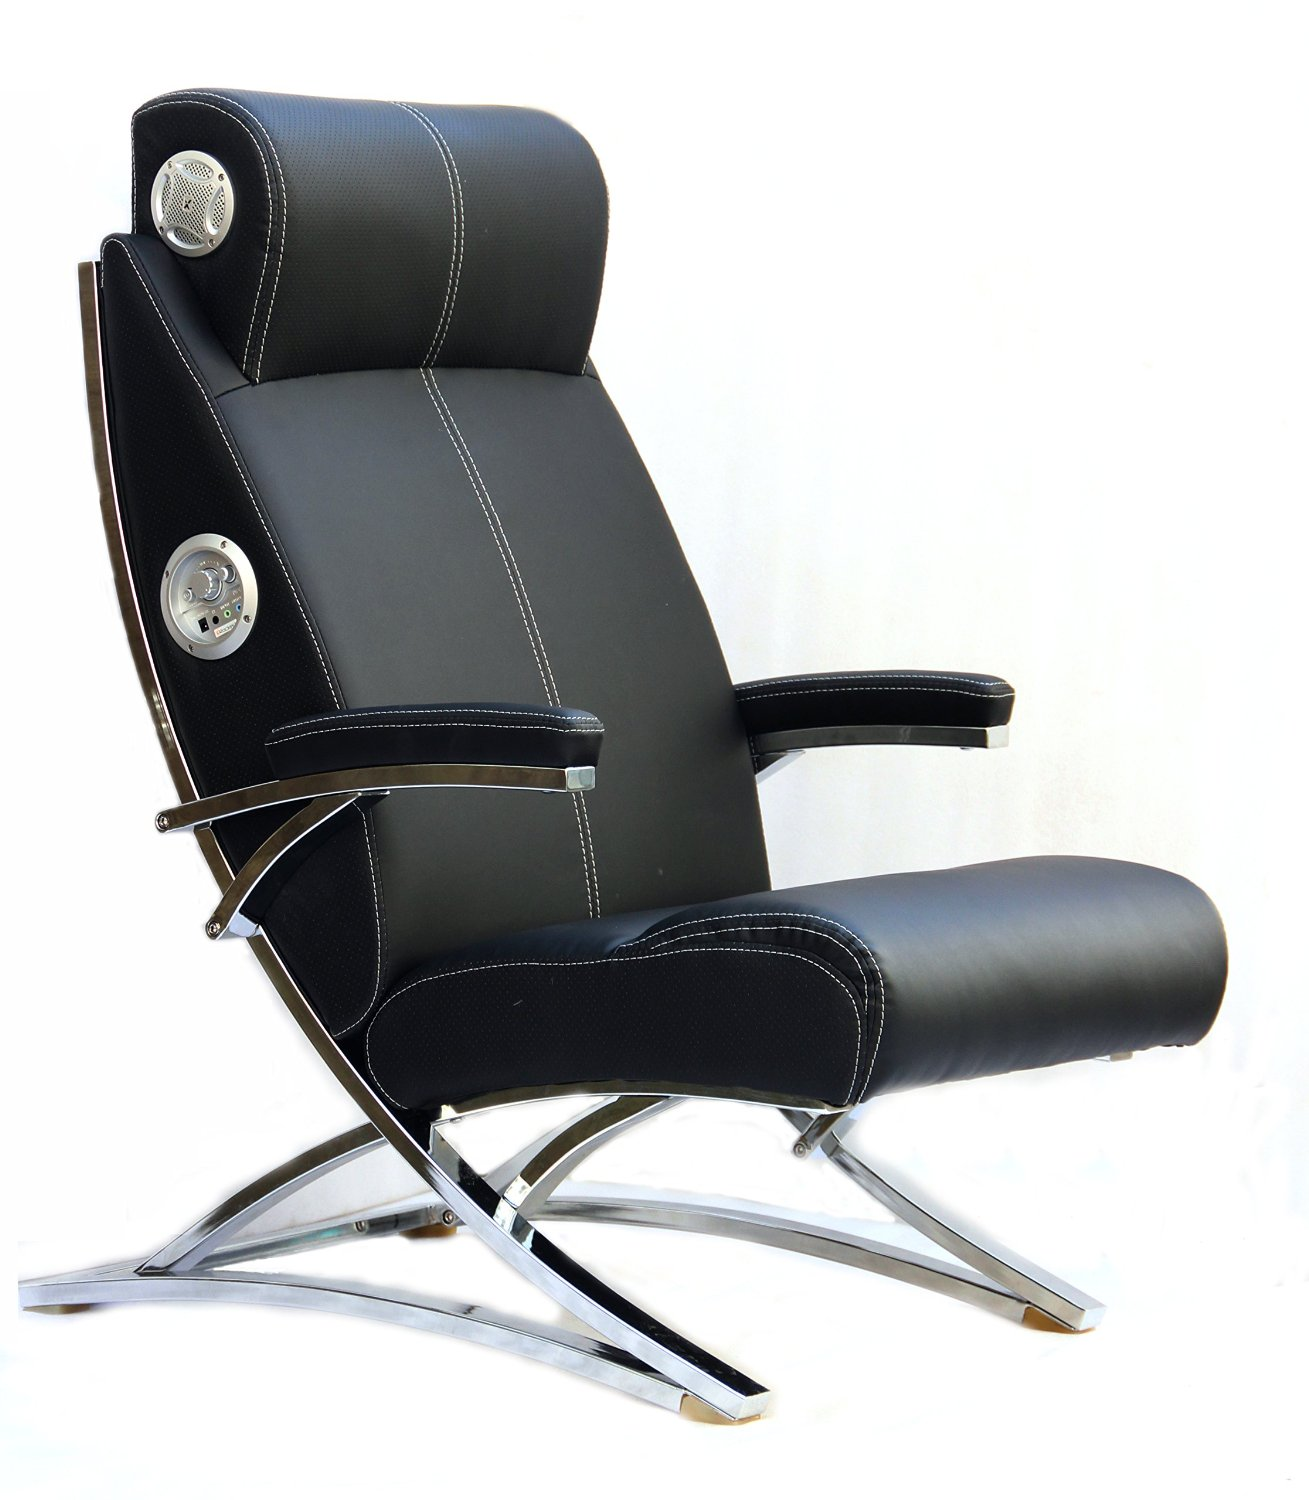 Game Chair Rocker X Rocker Gaming Chair Buyers Info